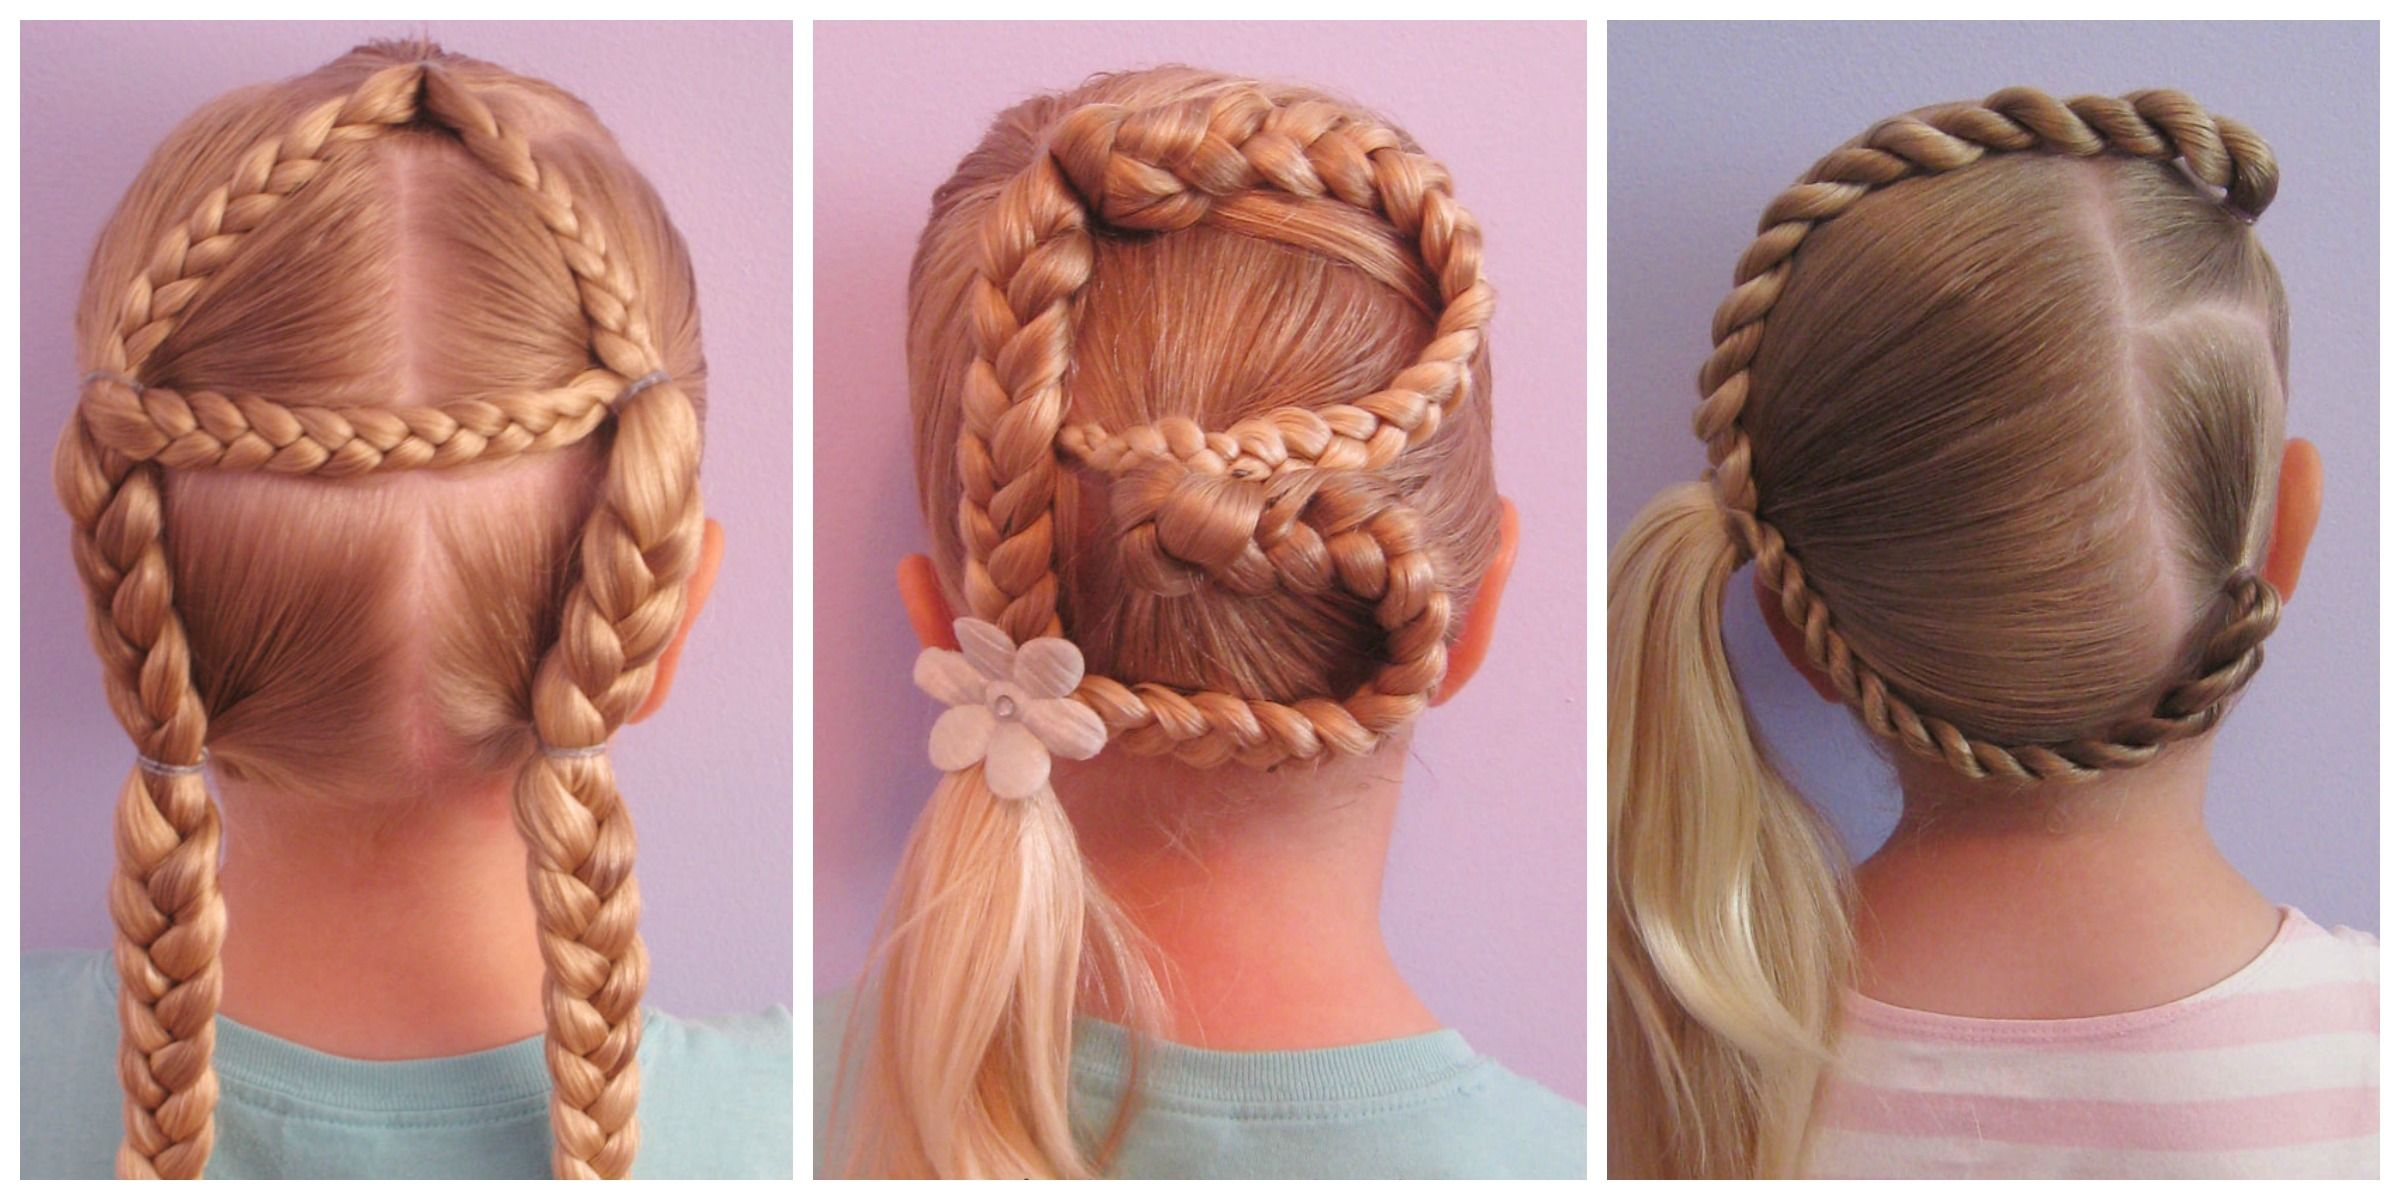 Mom S Creative Hair Braiding Idea Alphabet Braid Tutorials